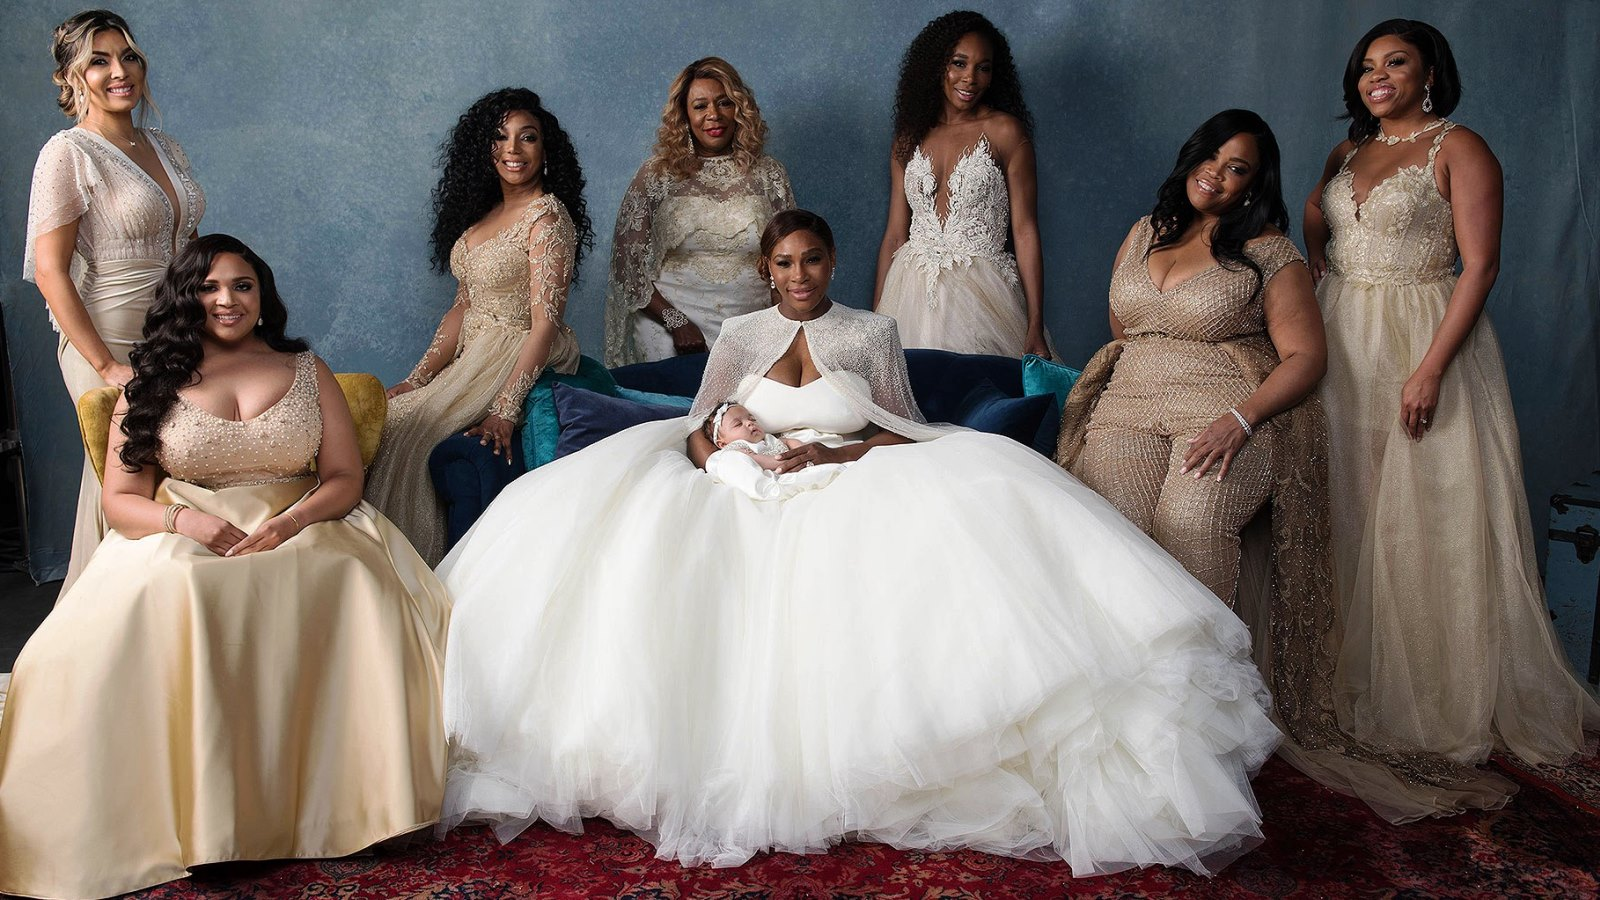 Israeli Designer Clothes Serena Williams' Bridal Party